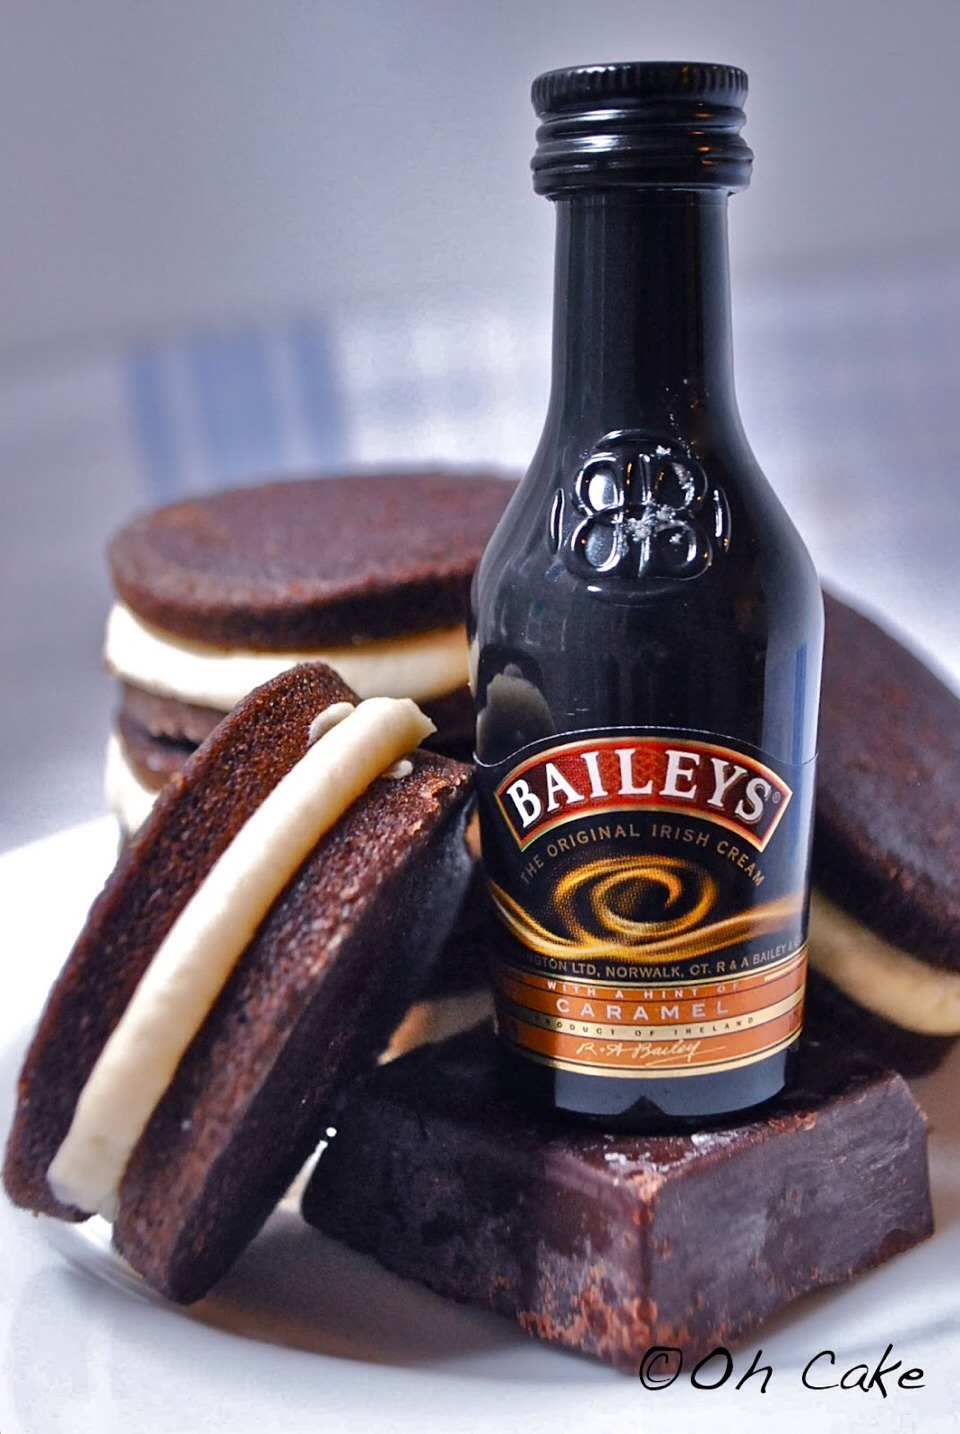 For the Bailey's buttercream frosting: 8 tbsp. unsalted butter, at room temperature 3-4 cups confectioners' sugar, sifted 4-8 tbsp. Bailey's Irish cream